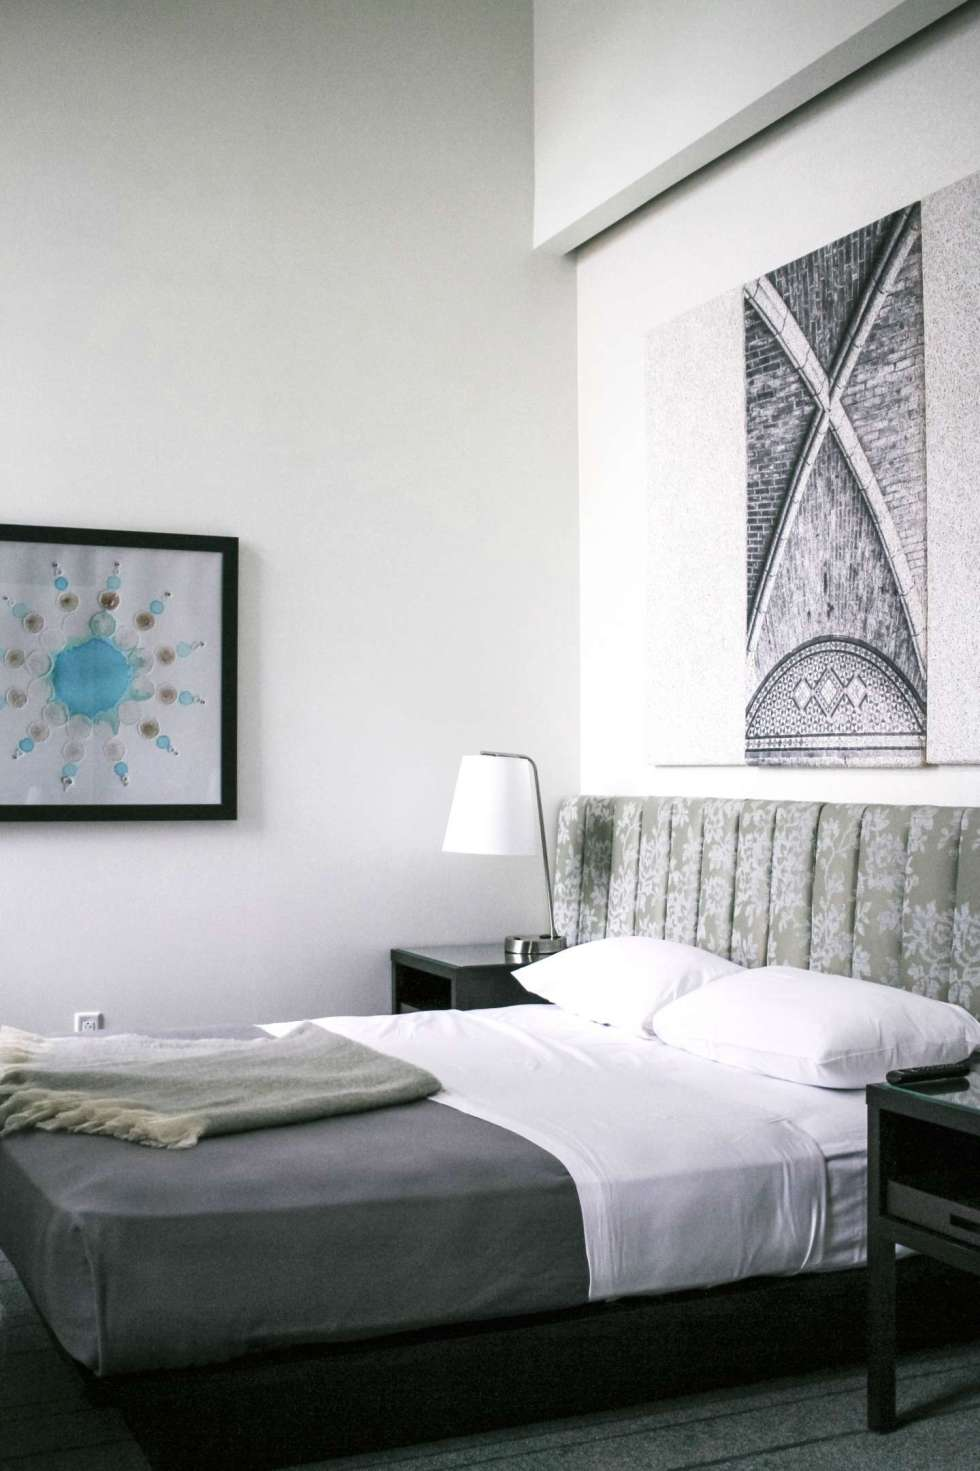 A Night at the Hotel Henry Urban Resort - I'm Fixin' To - @mbg0112